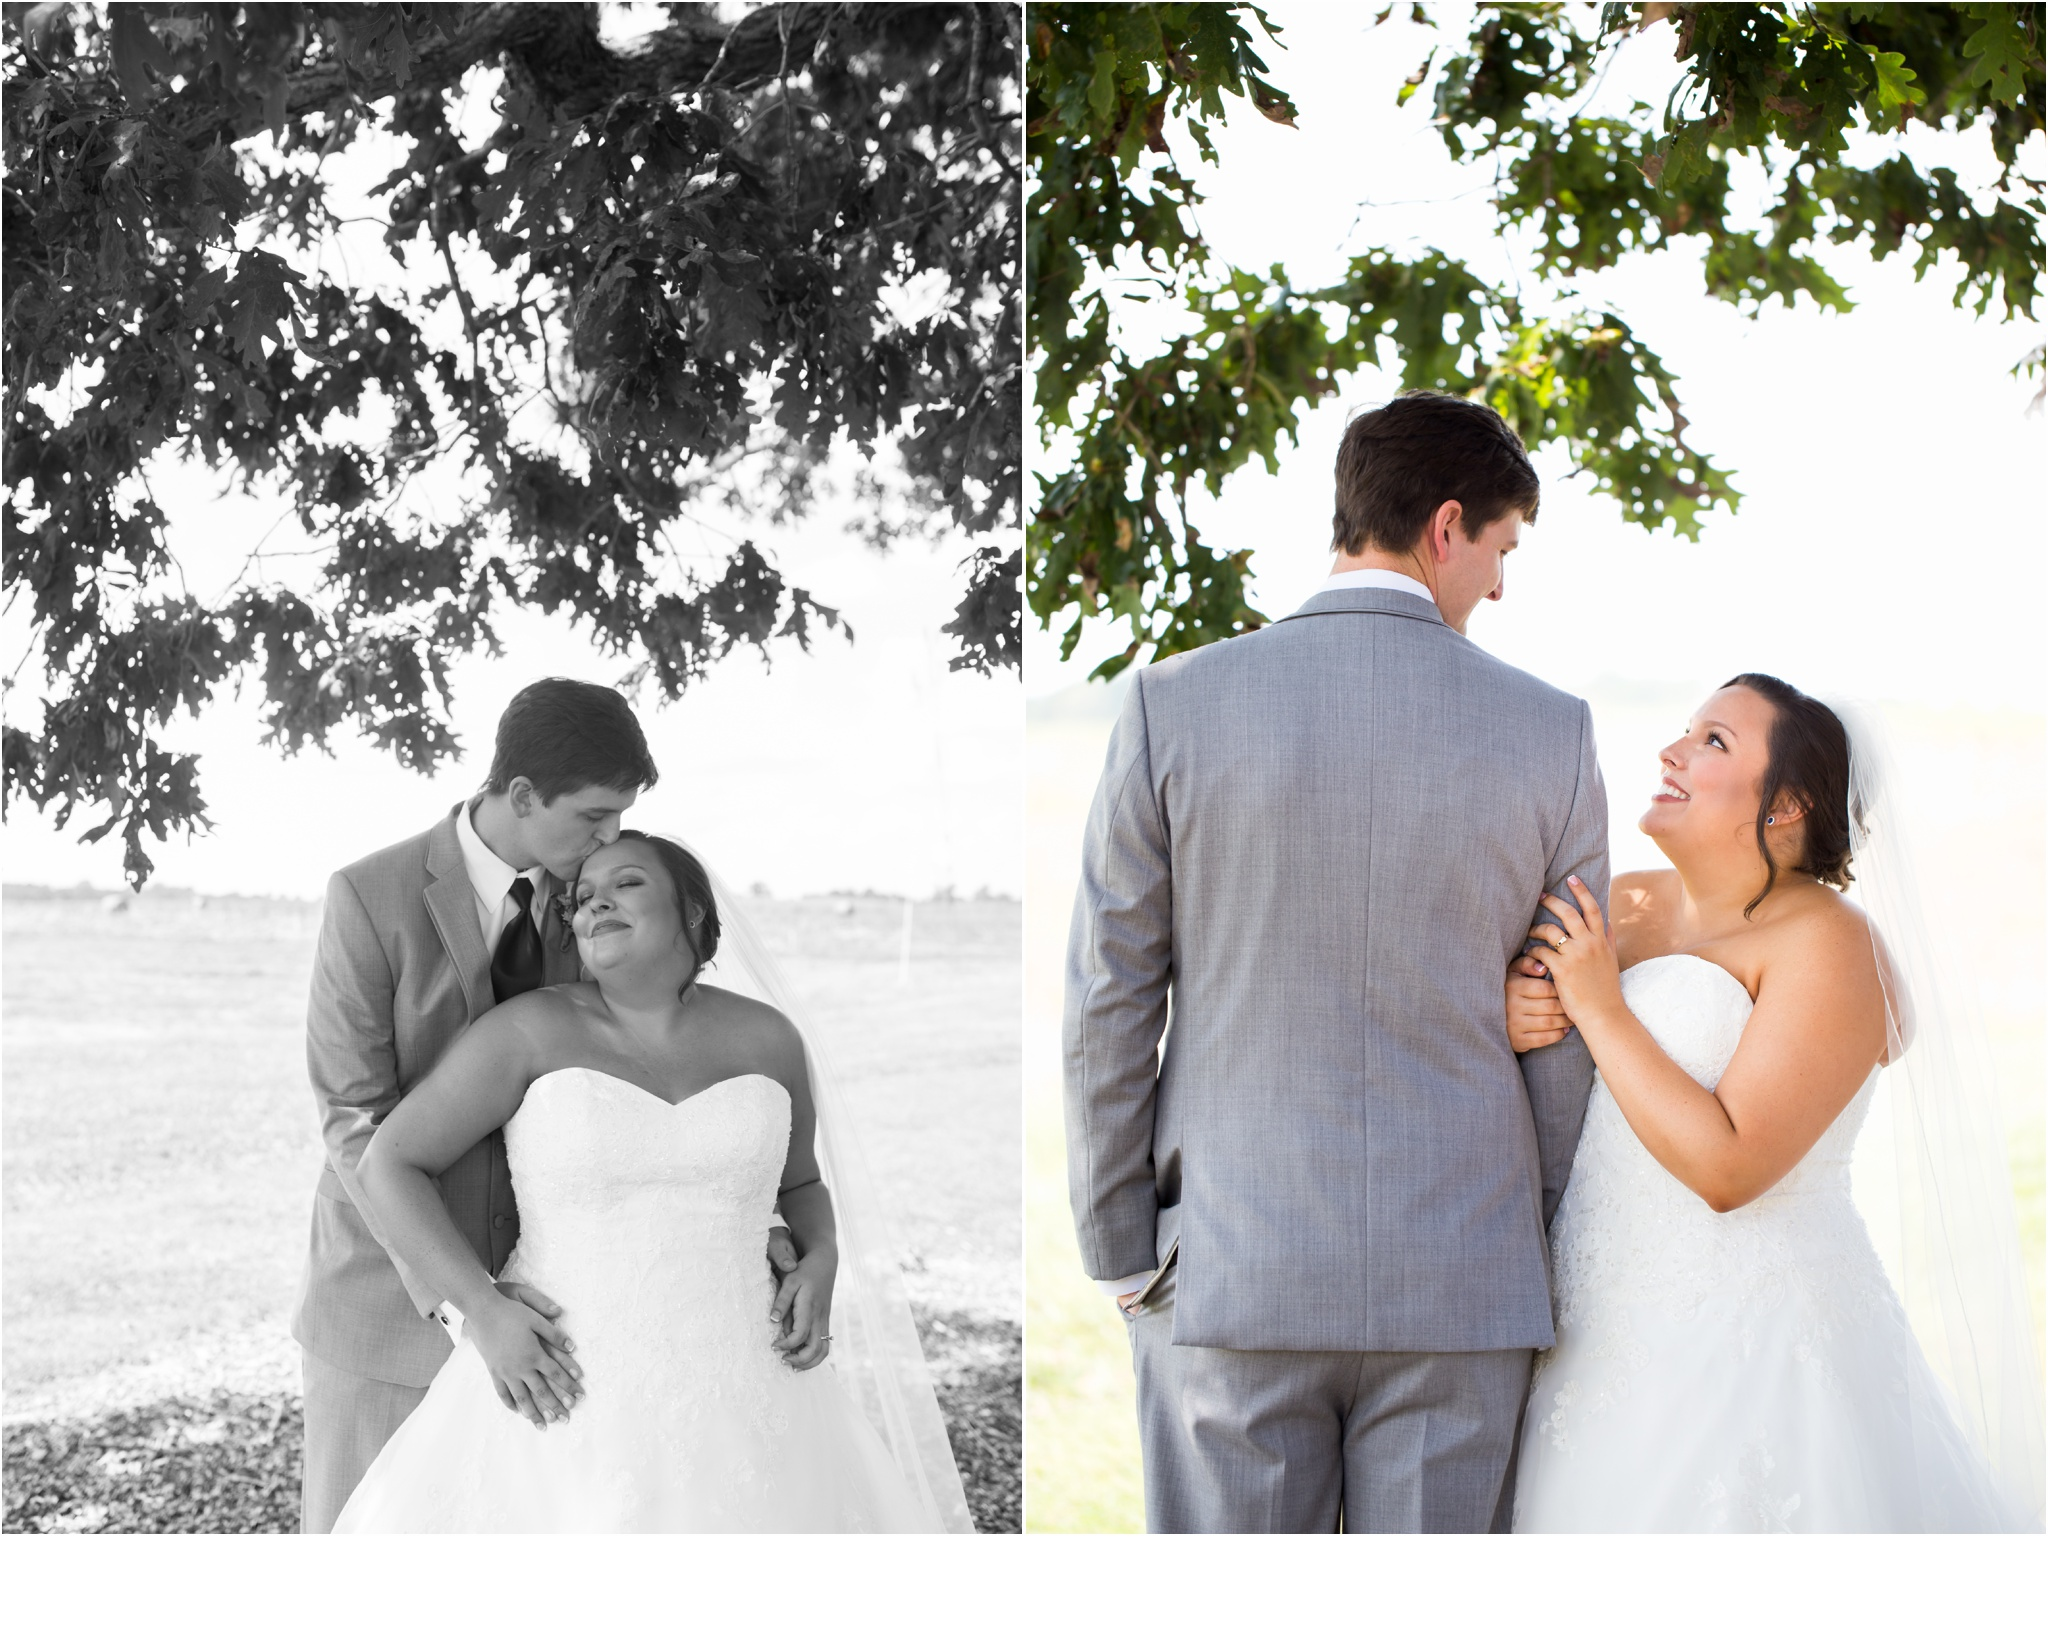 Rainey_Gregg_Photography_St._Simons_Island_Georgia_California_Wedding_Portrait_Photography_0307.jpg